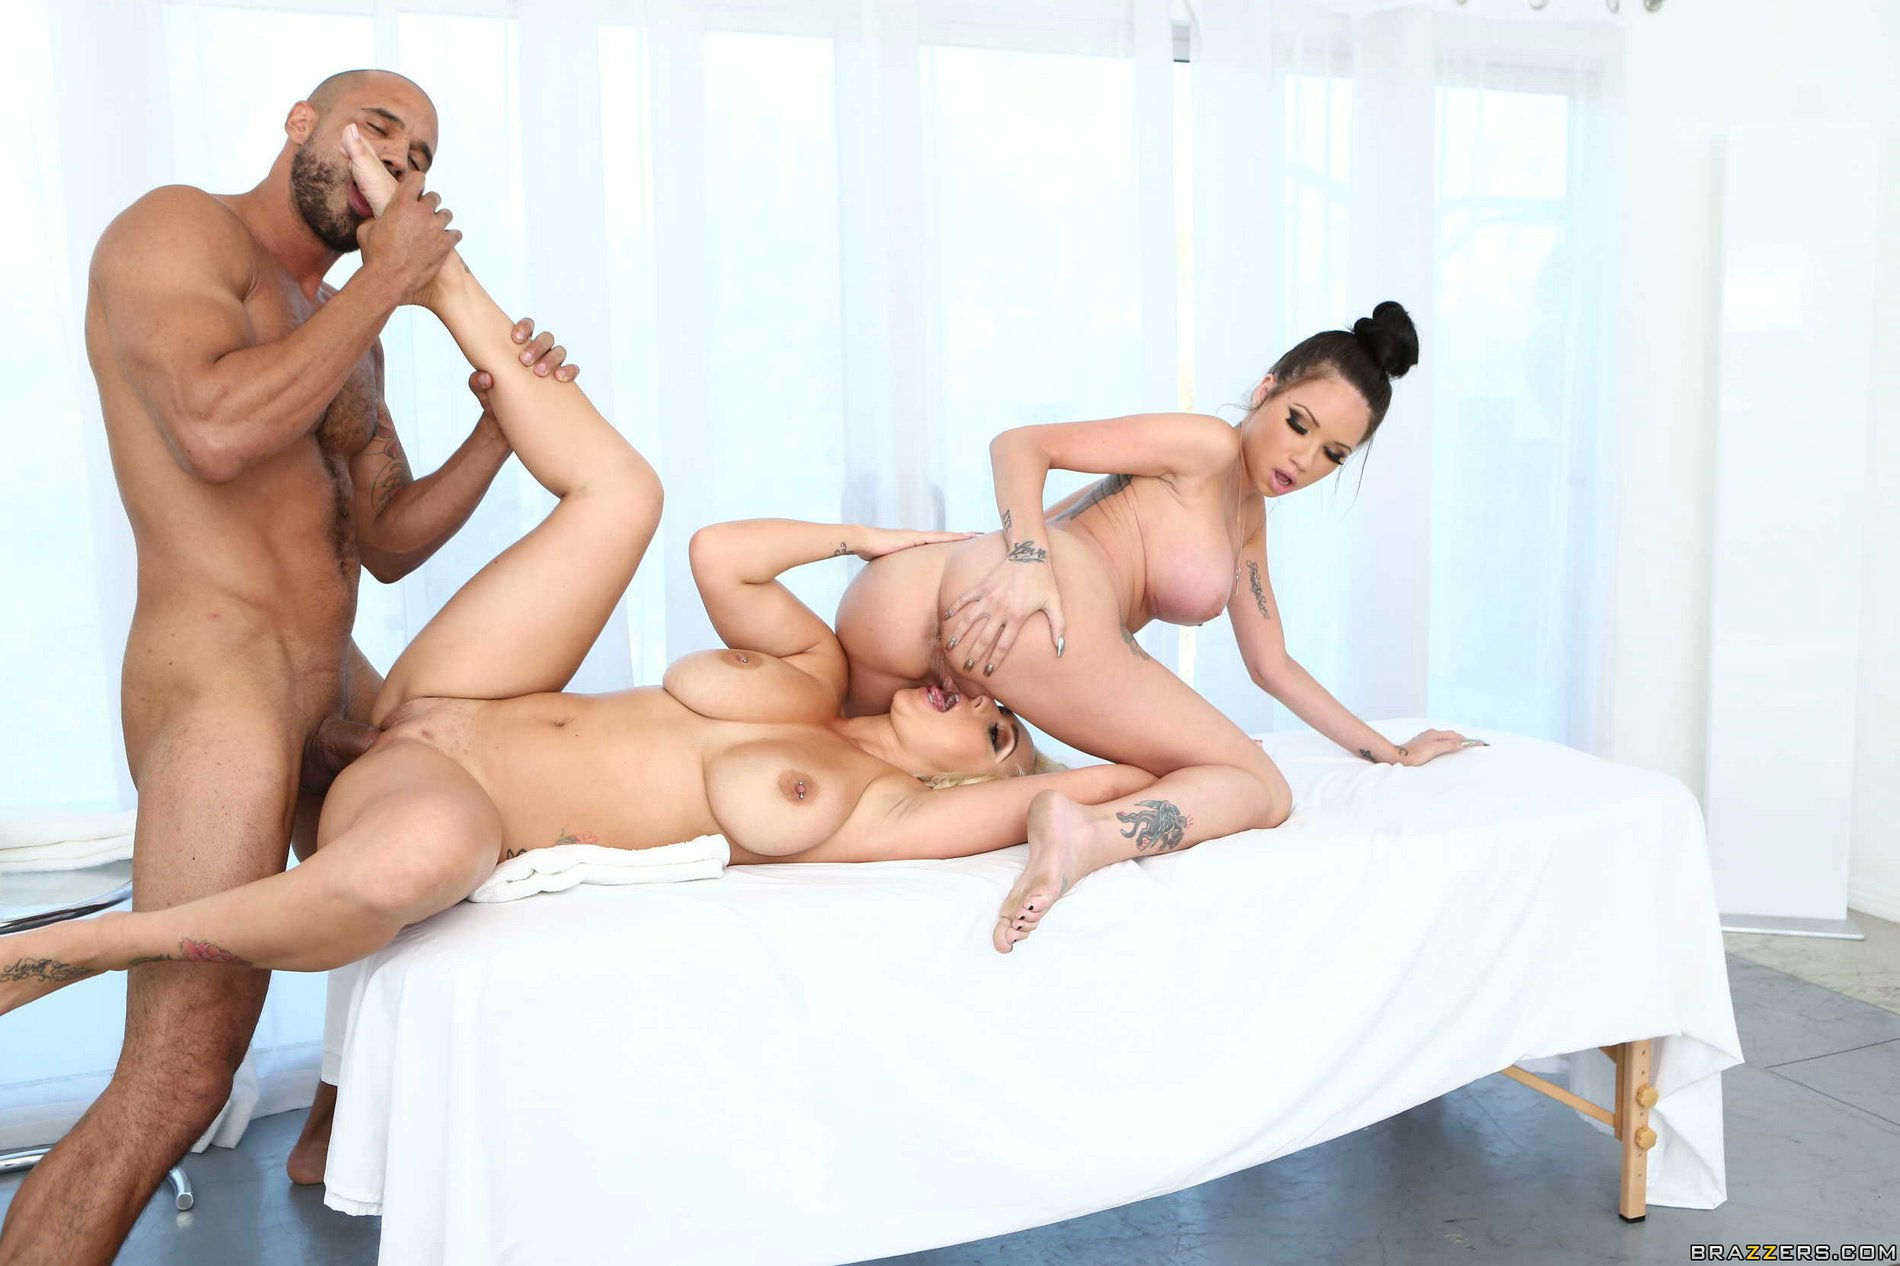 Asian milf from bay area taking young bbc Part 6 8